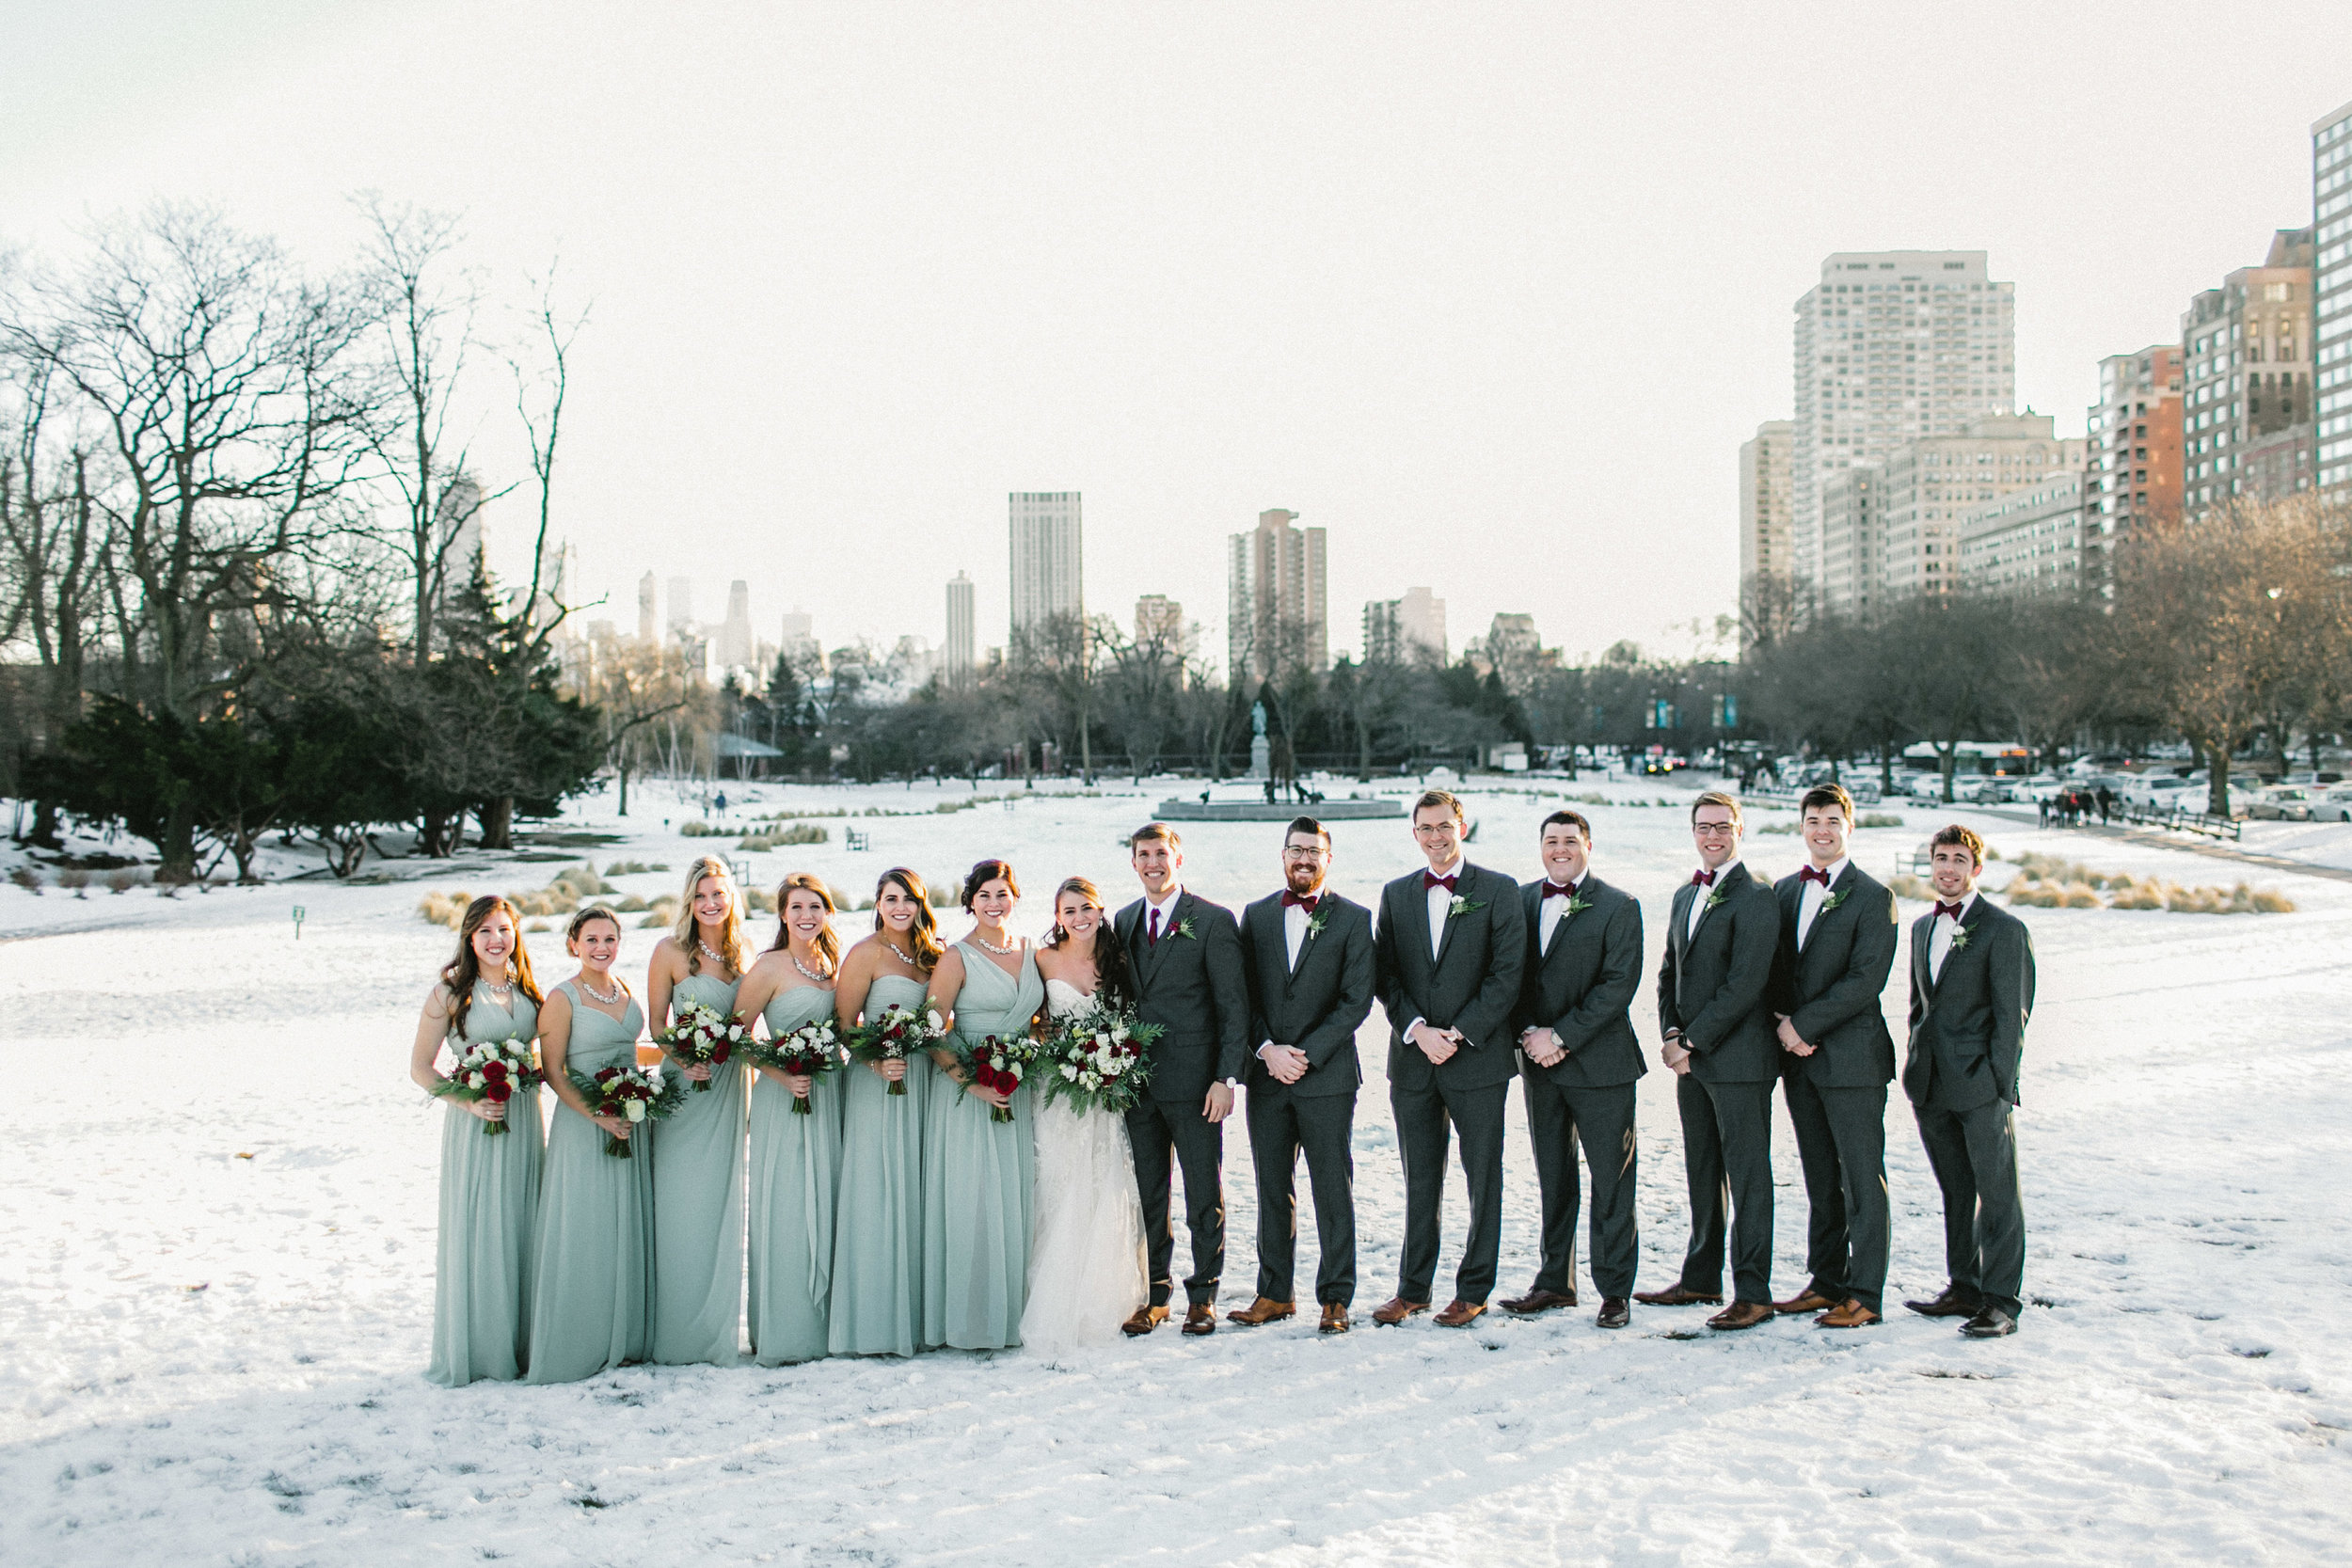 Winter Snowy Wedding bridal party